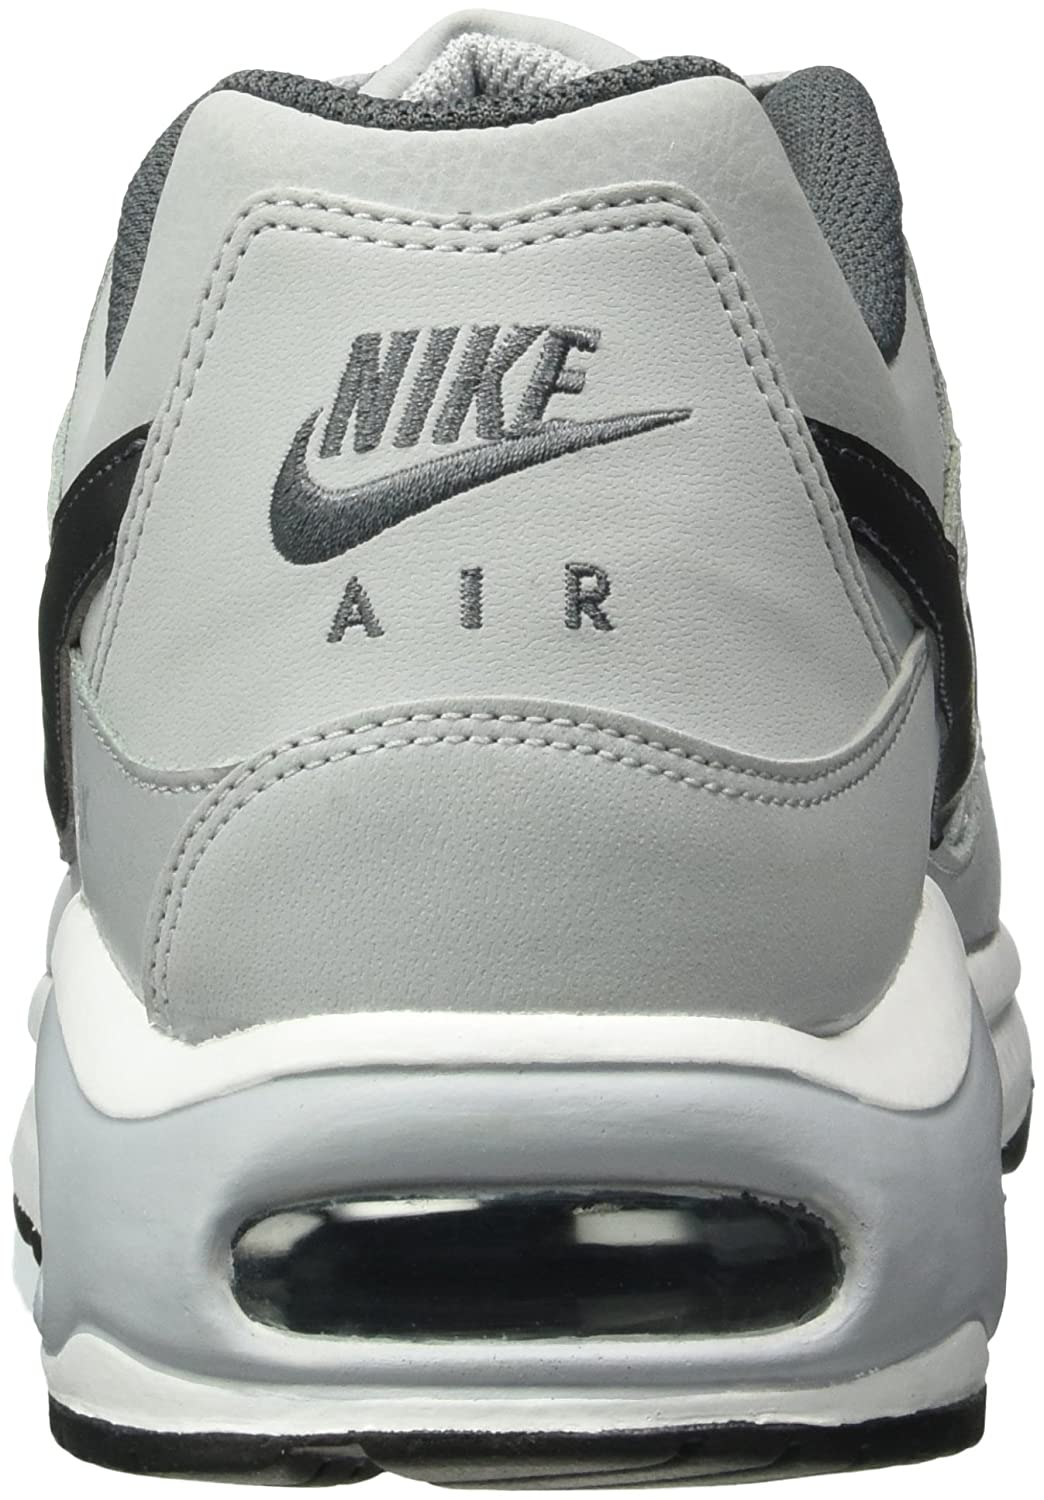 Nike Nike Nike Herren Air Max Command Leather Laufschuhe B01IODN5QA a59938